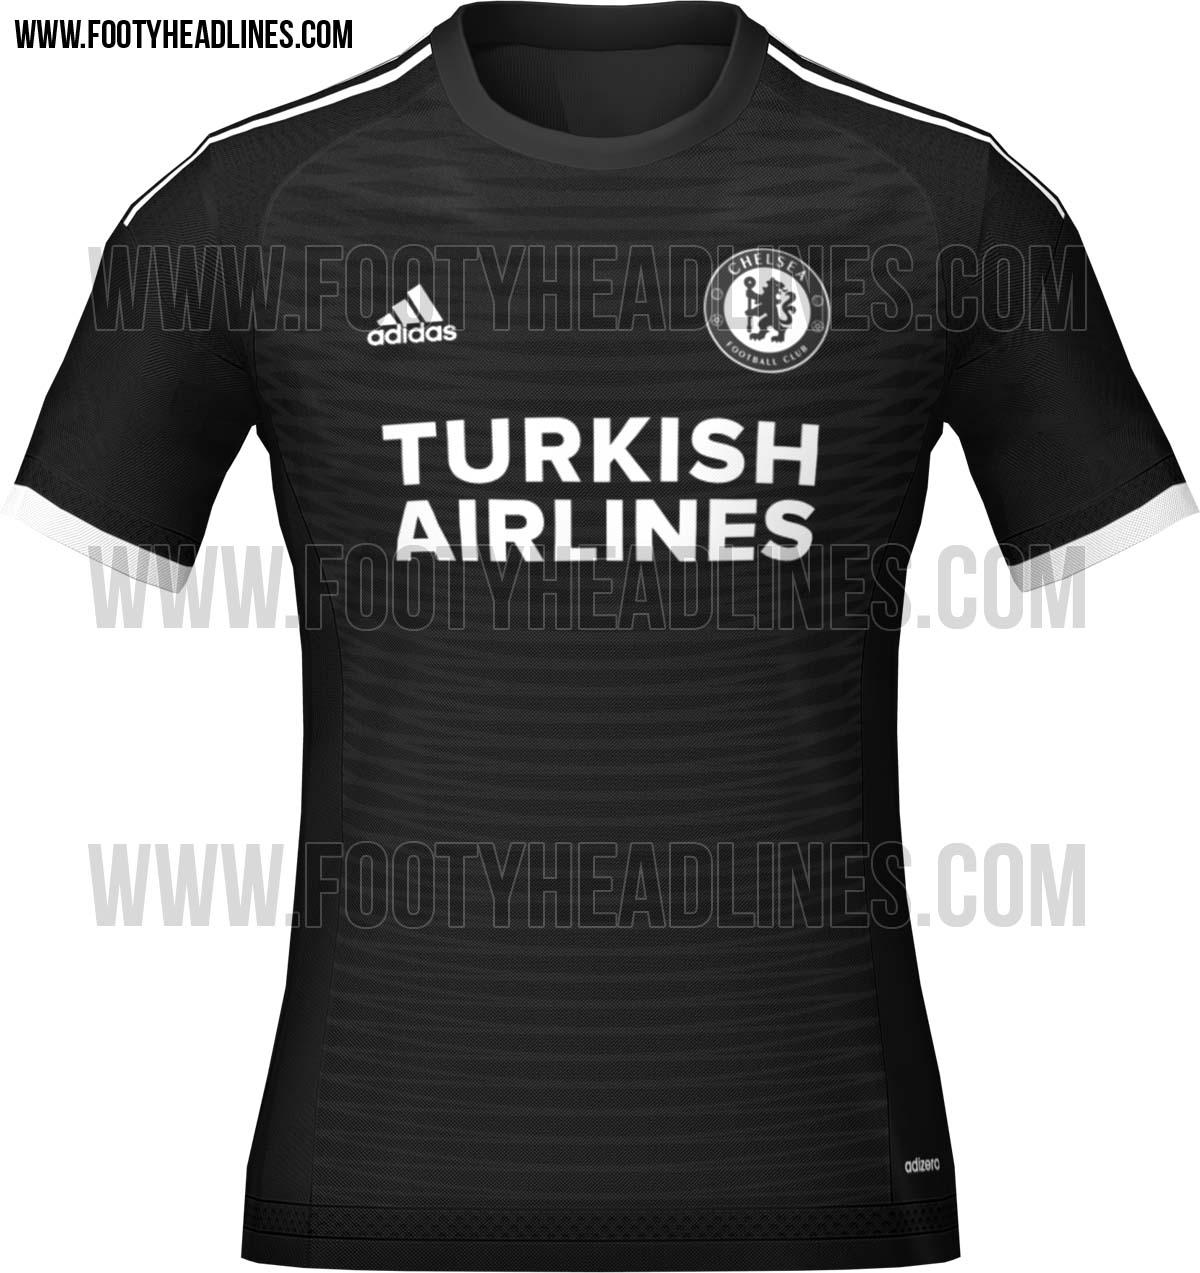 4a3afe5ae13 The new black Chelsea 2015-16 Third Kit is black with contrasting white  logos. On the front of the new Adidas Chelsea 15-16 Third Soccer Jersey is  a special ...